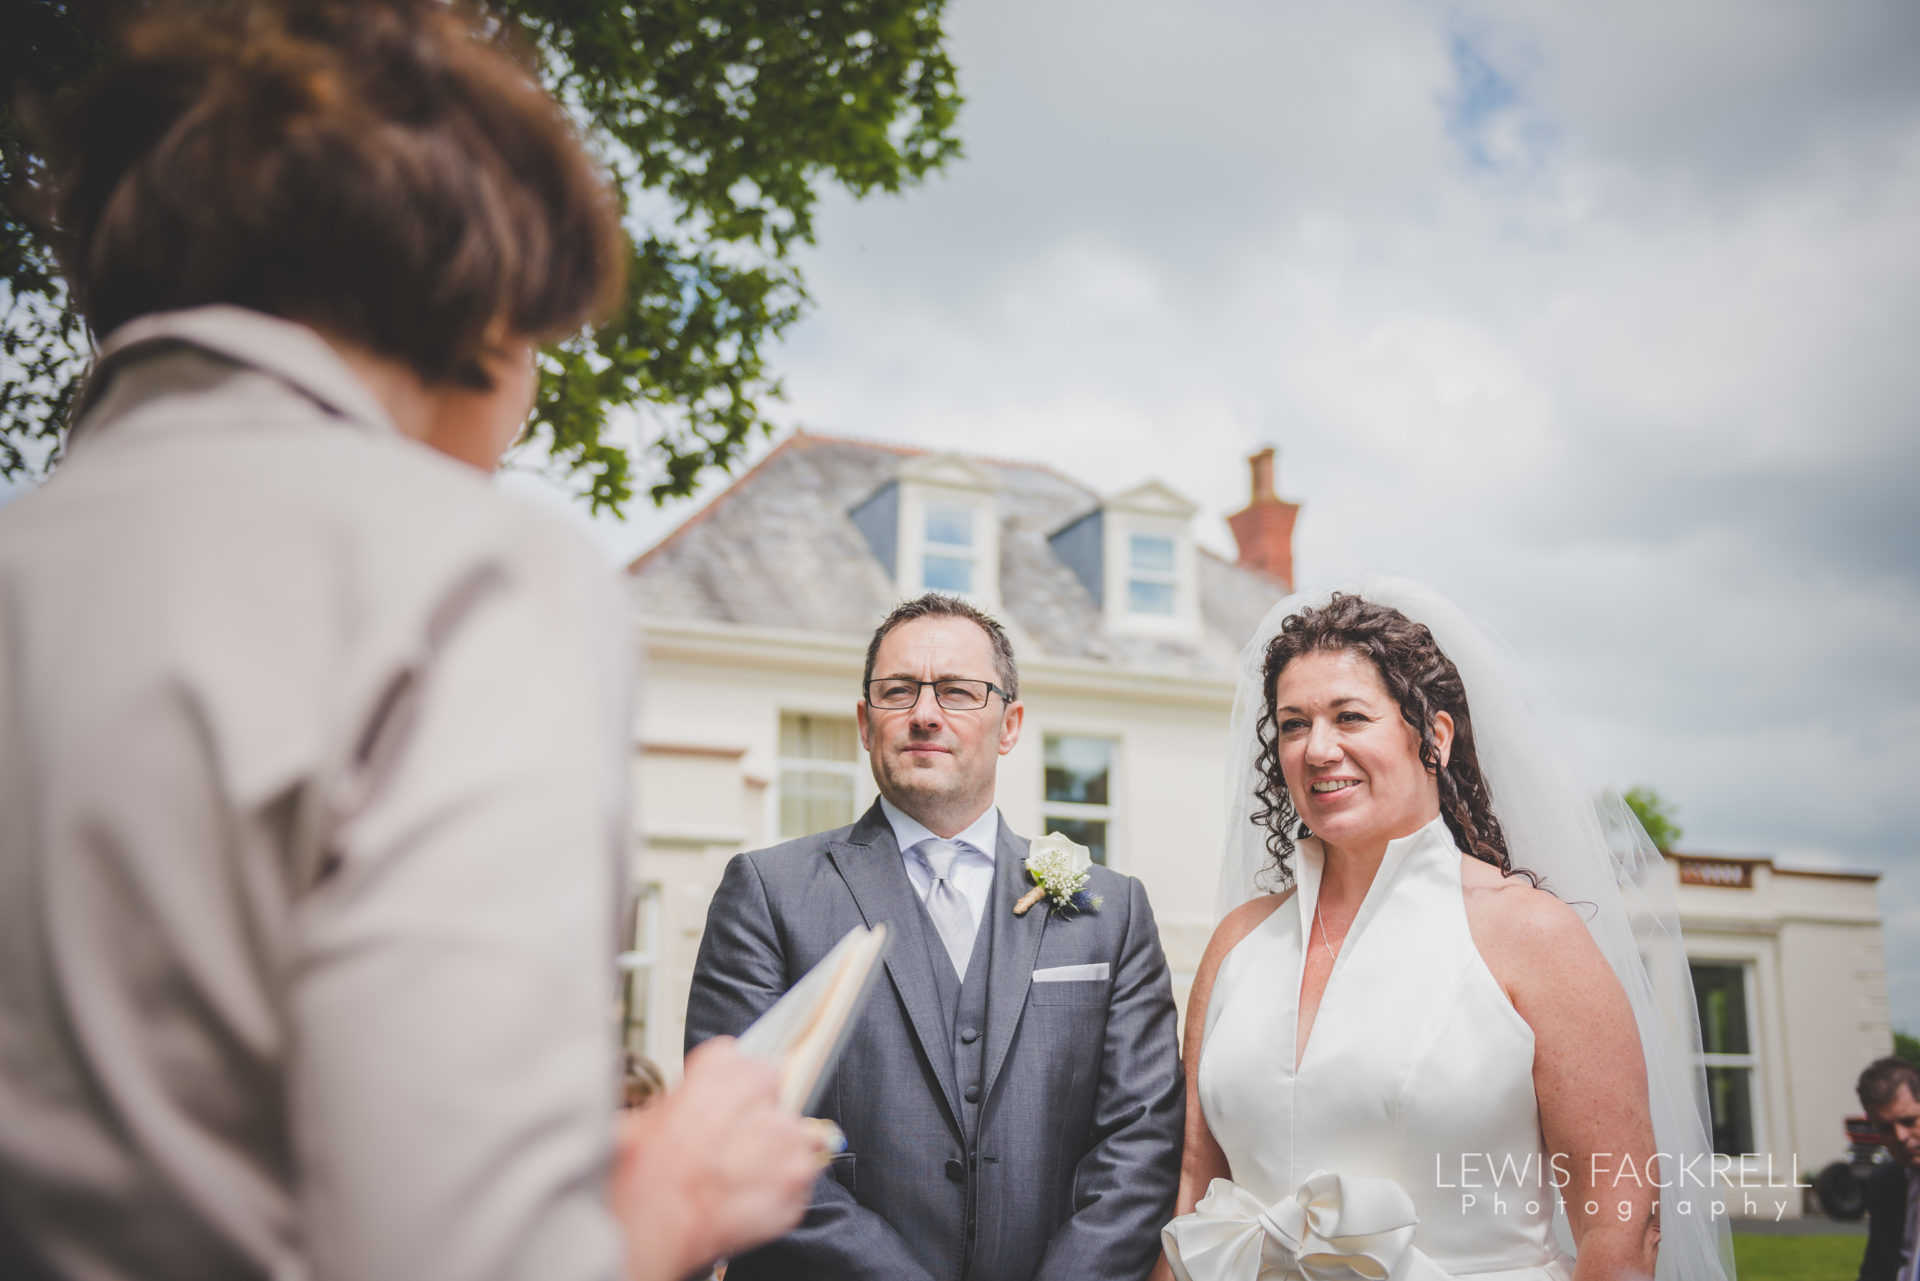 Lewis-Fackrell-Photography-Wedding-Photographer-Cardiff-Swansea-Bristol-Newport-Pre-wedding-photoshoot-Rhian-Mark-Mansion-House-Llansteffan-Carmarthenshire--54